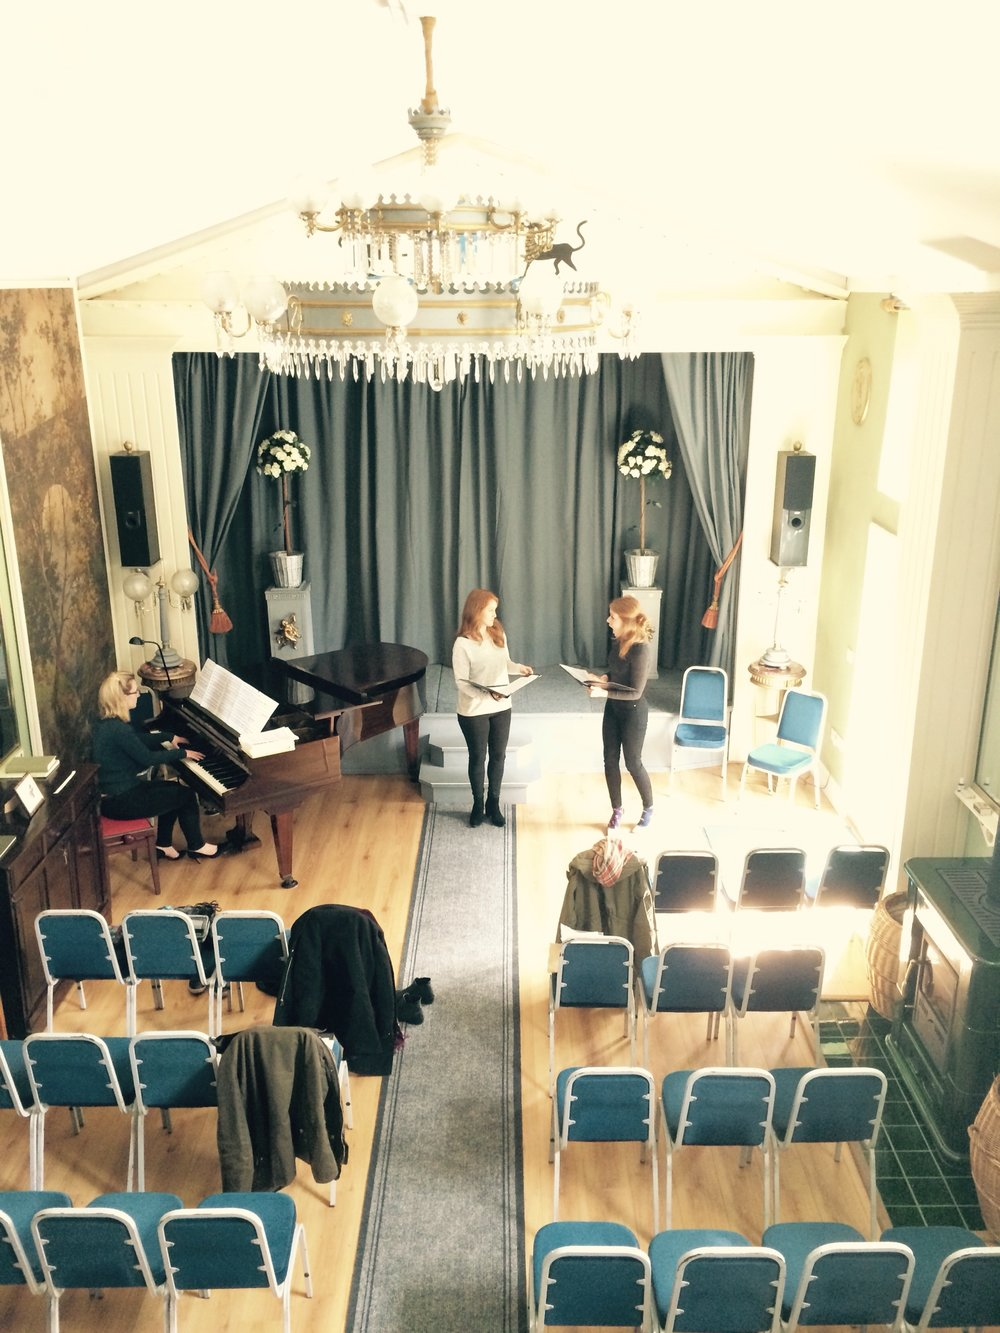 Natalie Burch (piano), Claire Lees (soprano) and Natalie Davies (mezzo-soprano) rehearse at Aeolian Court for 2016's Festival.